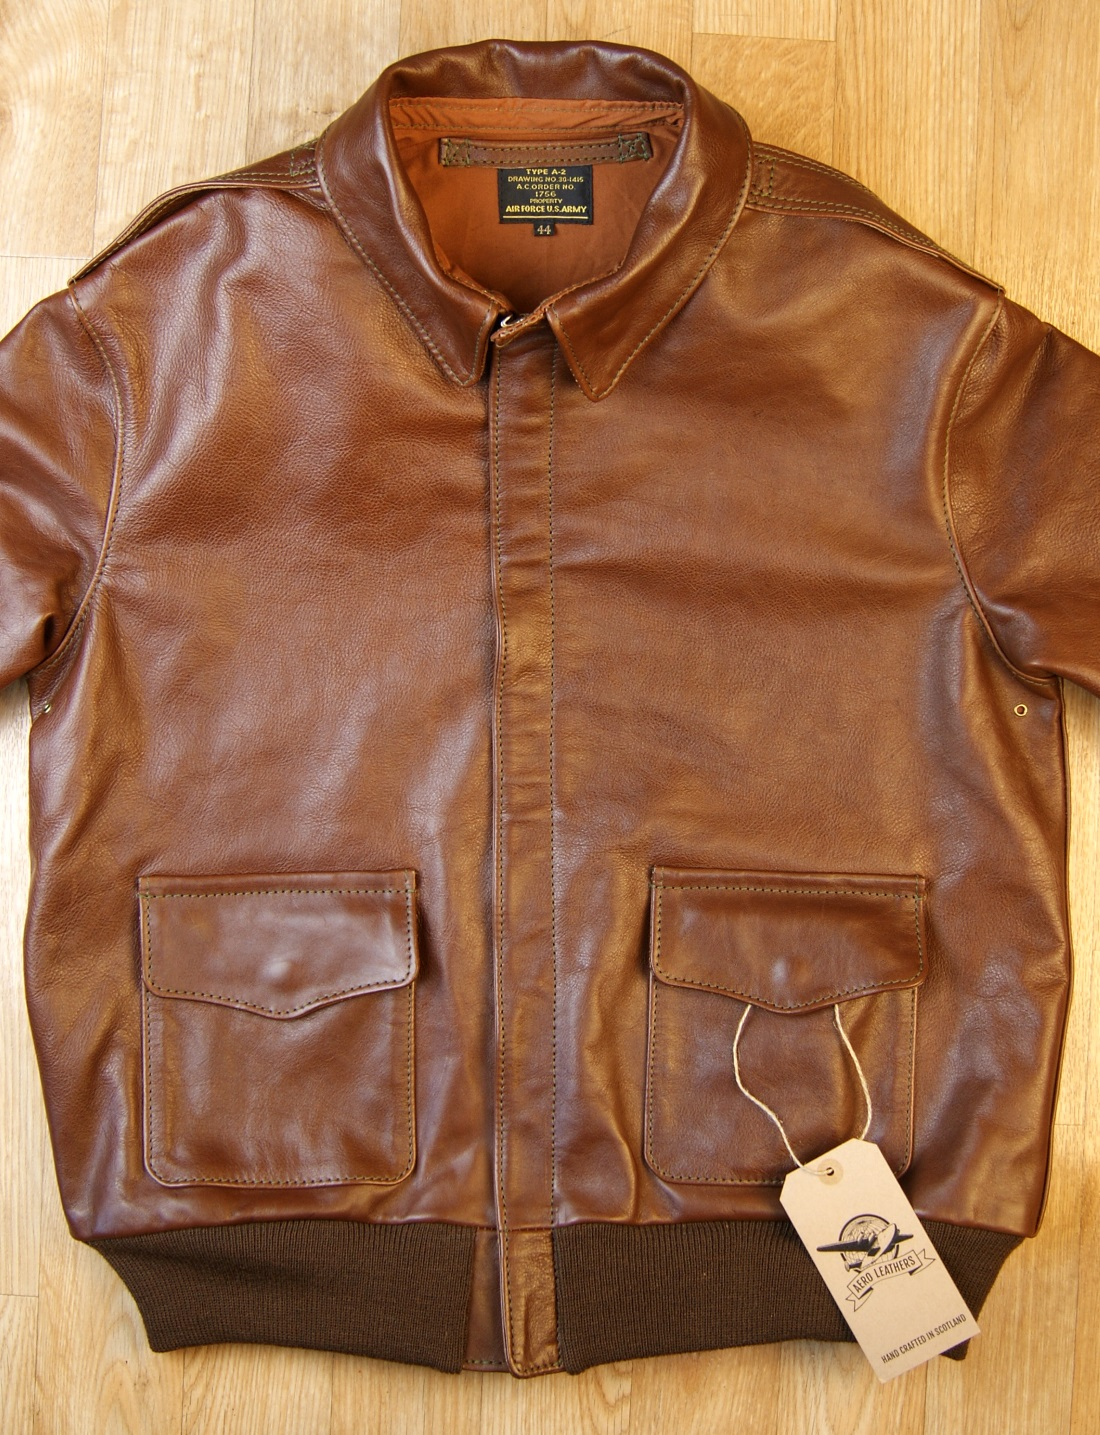 Aero Unknown Maker Russet Vicenza Horsehide KM7 front.jpg